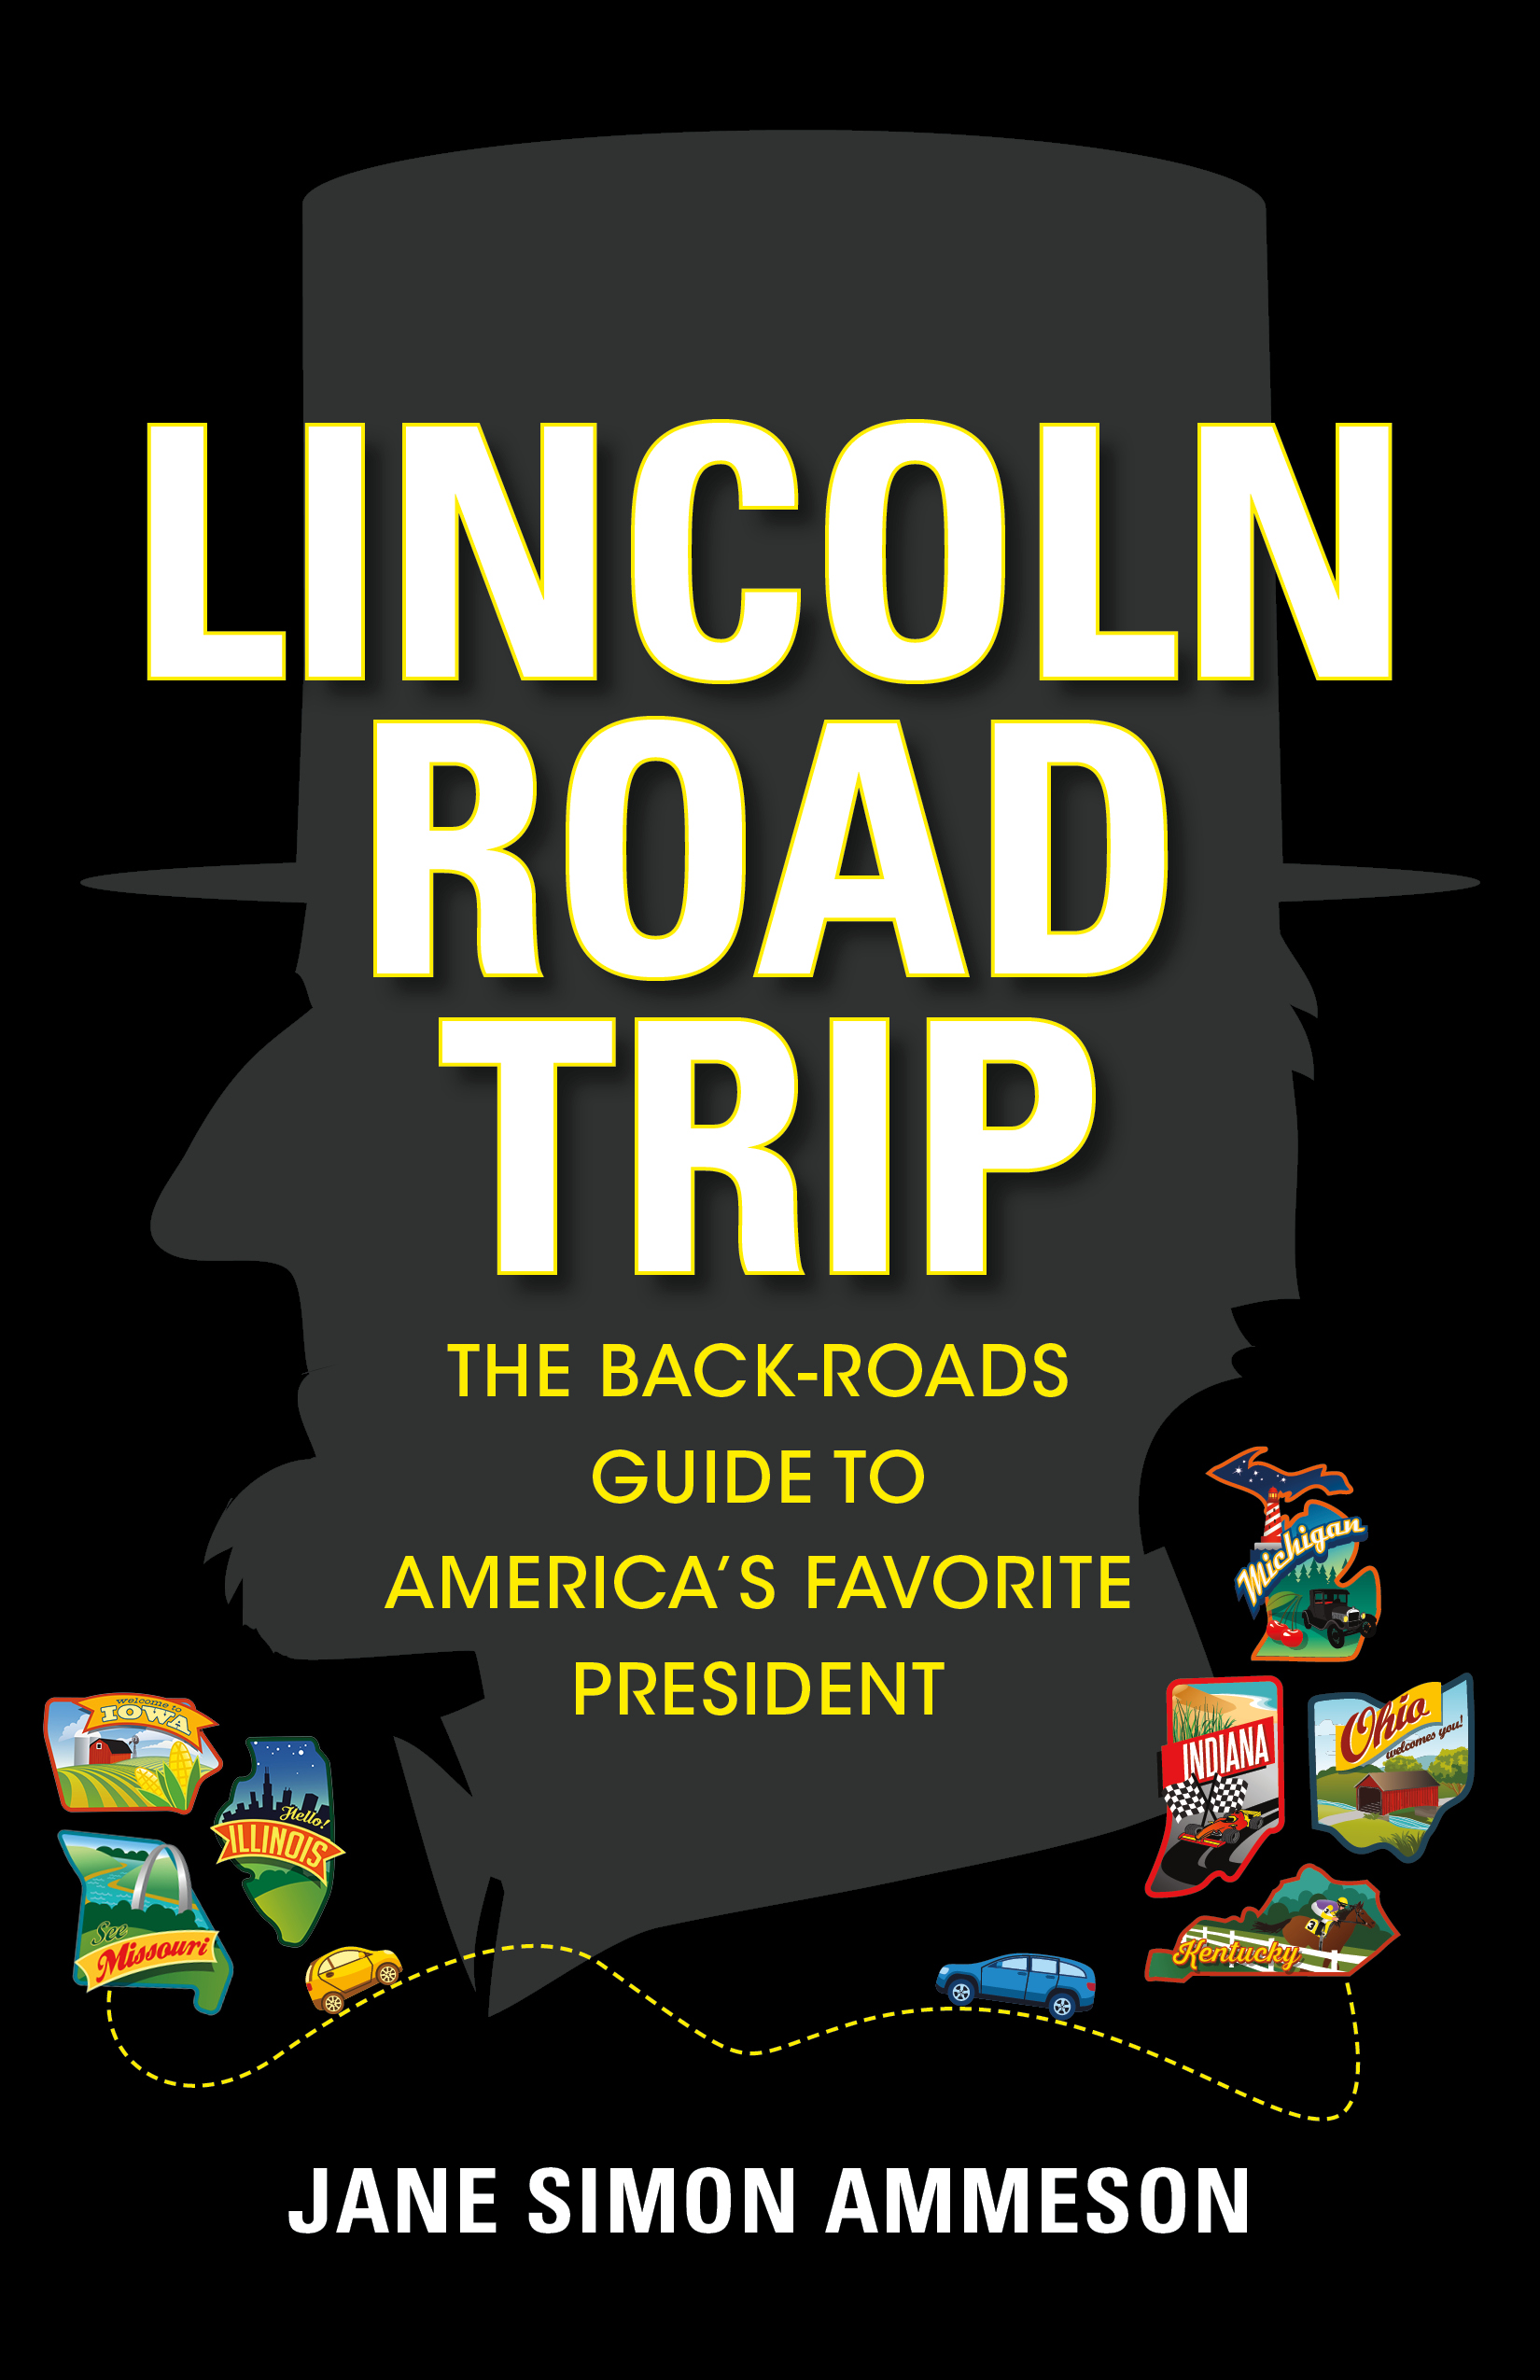 Lincoln Roadtrip: Following the backroads to find Abraham Lincoln